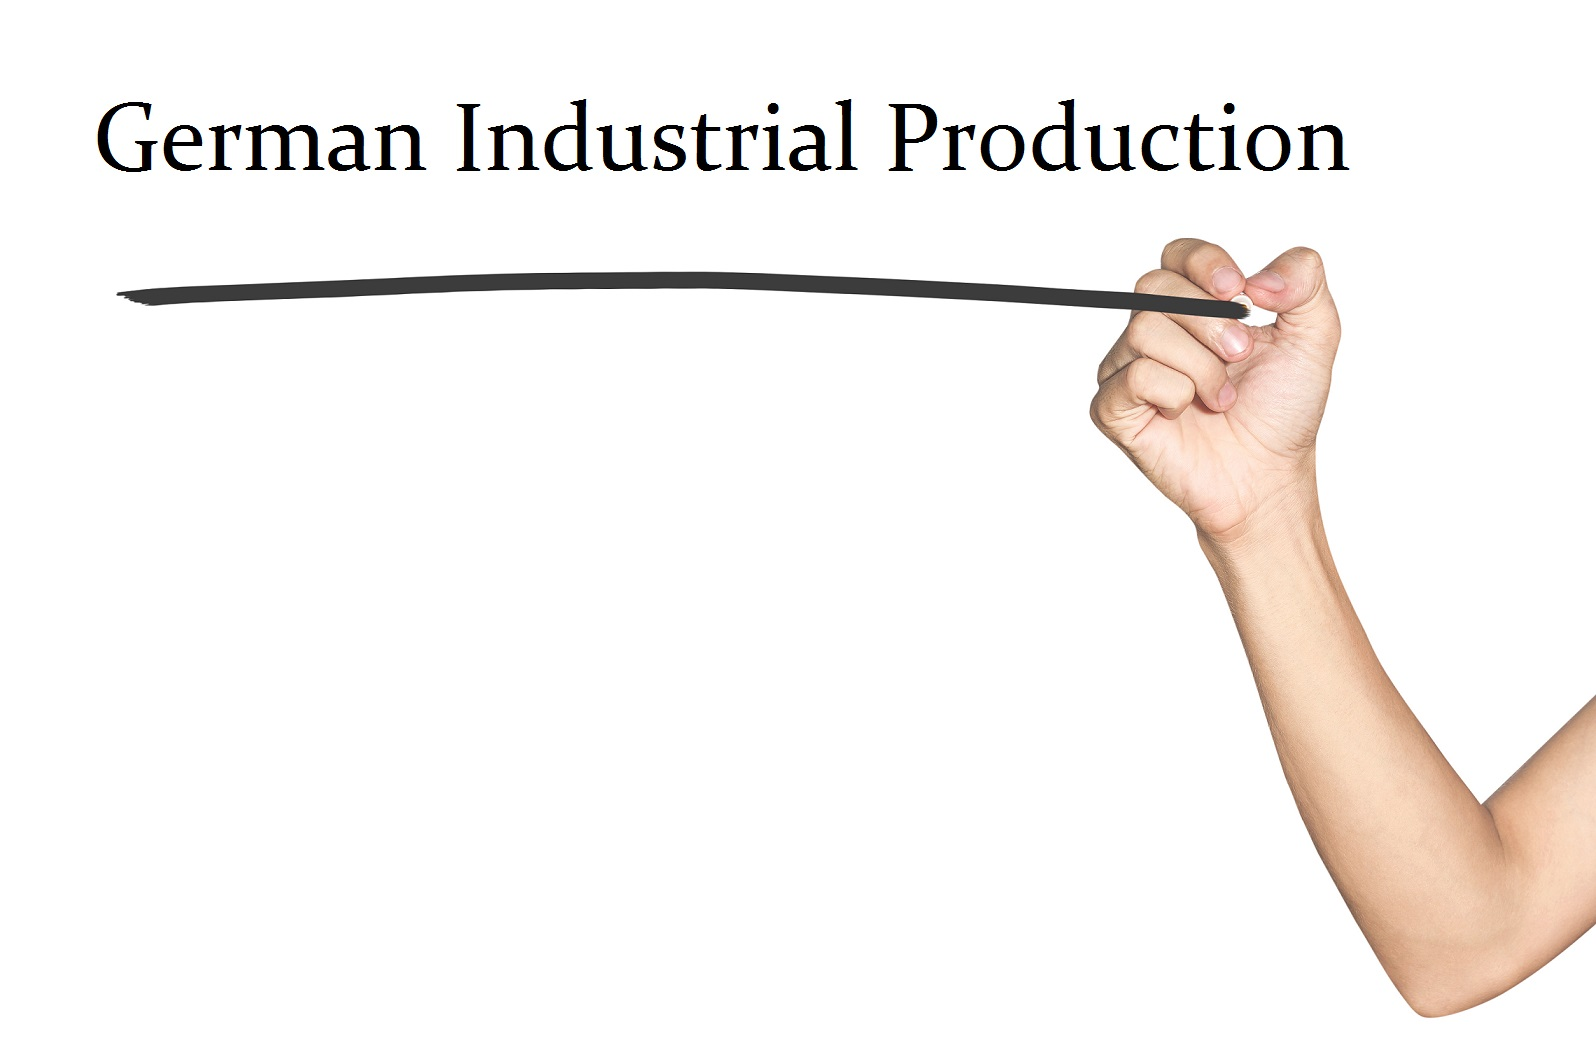 GermanIndustrialProduction